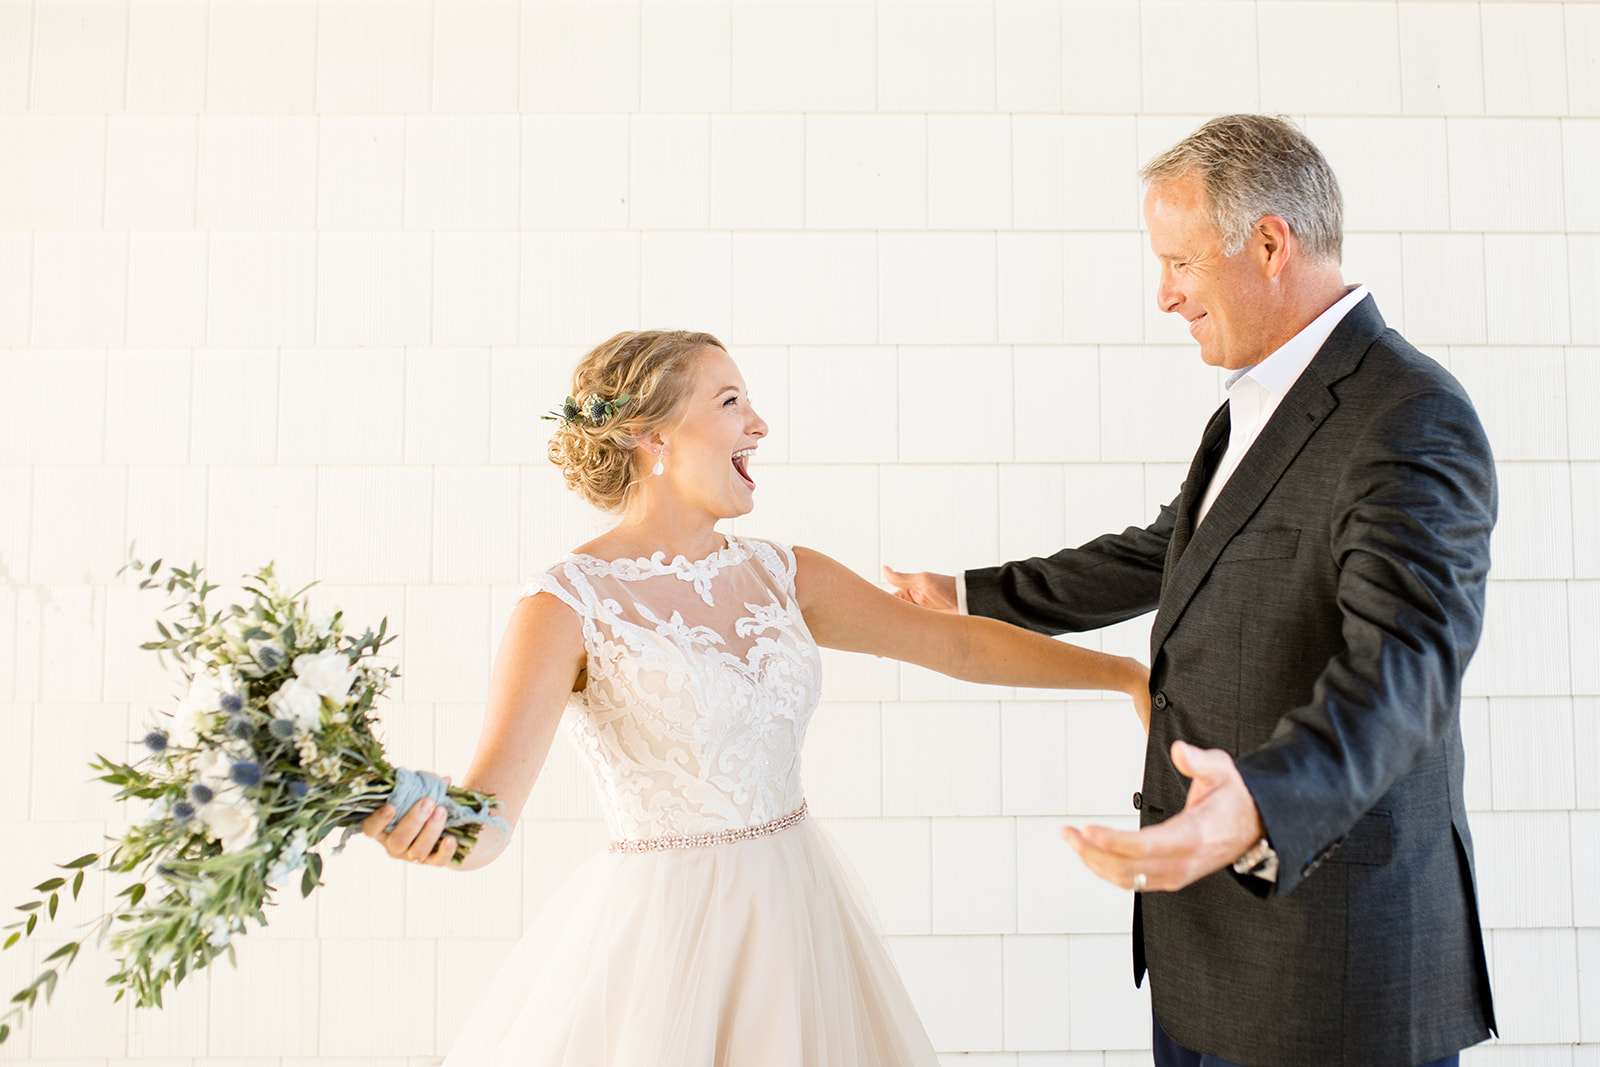 How To Make Your Parents Feel Special on Your Wedding Day - Image Property of www.j-dphoto.com